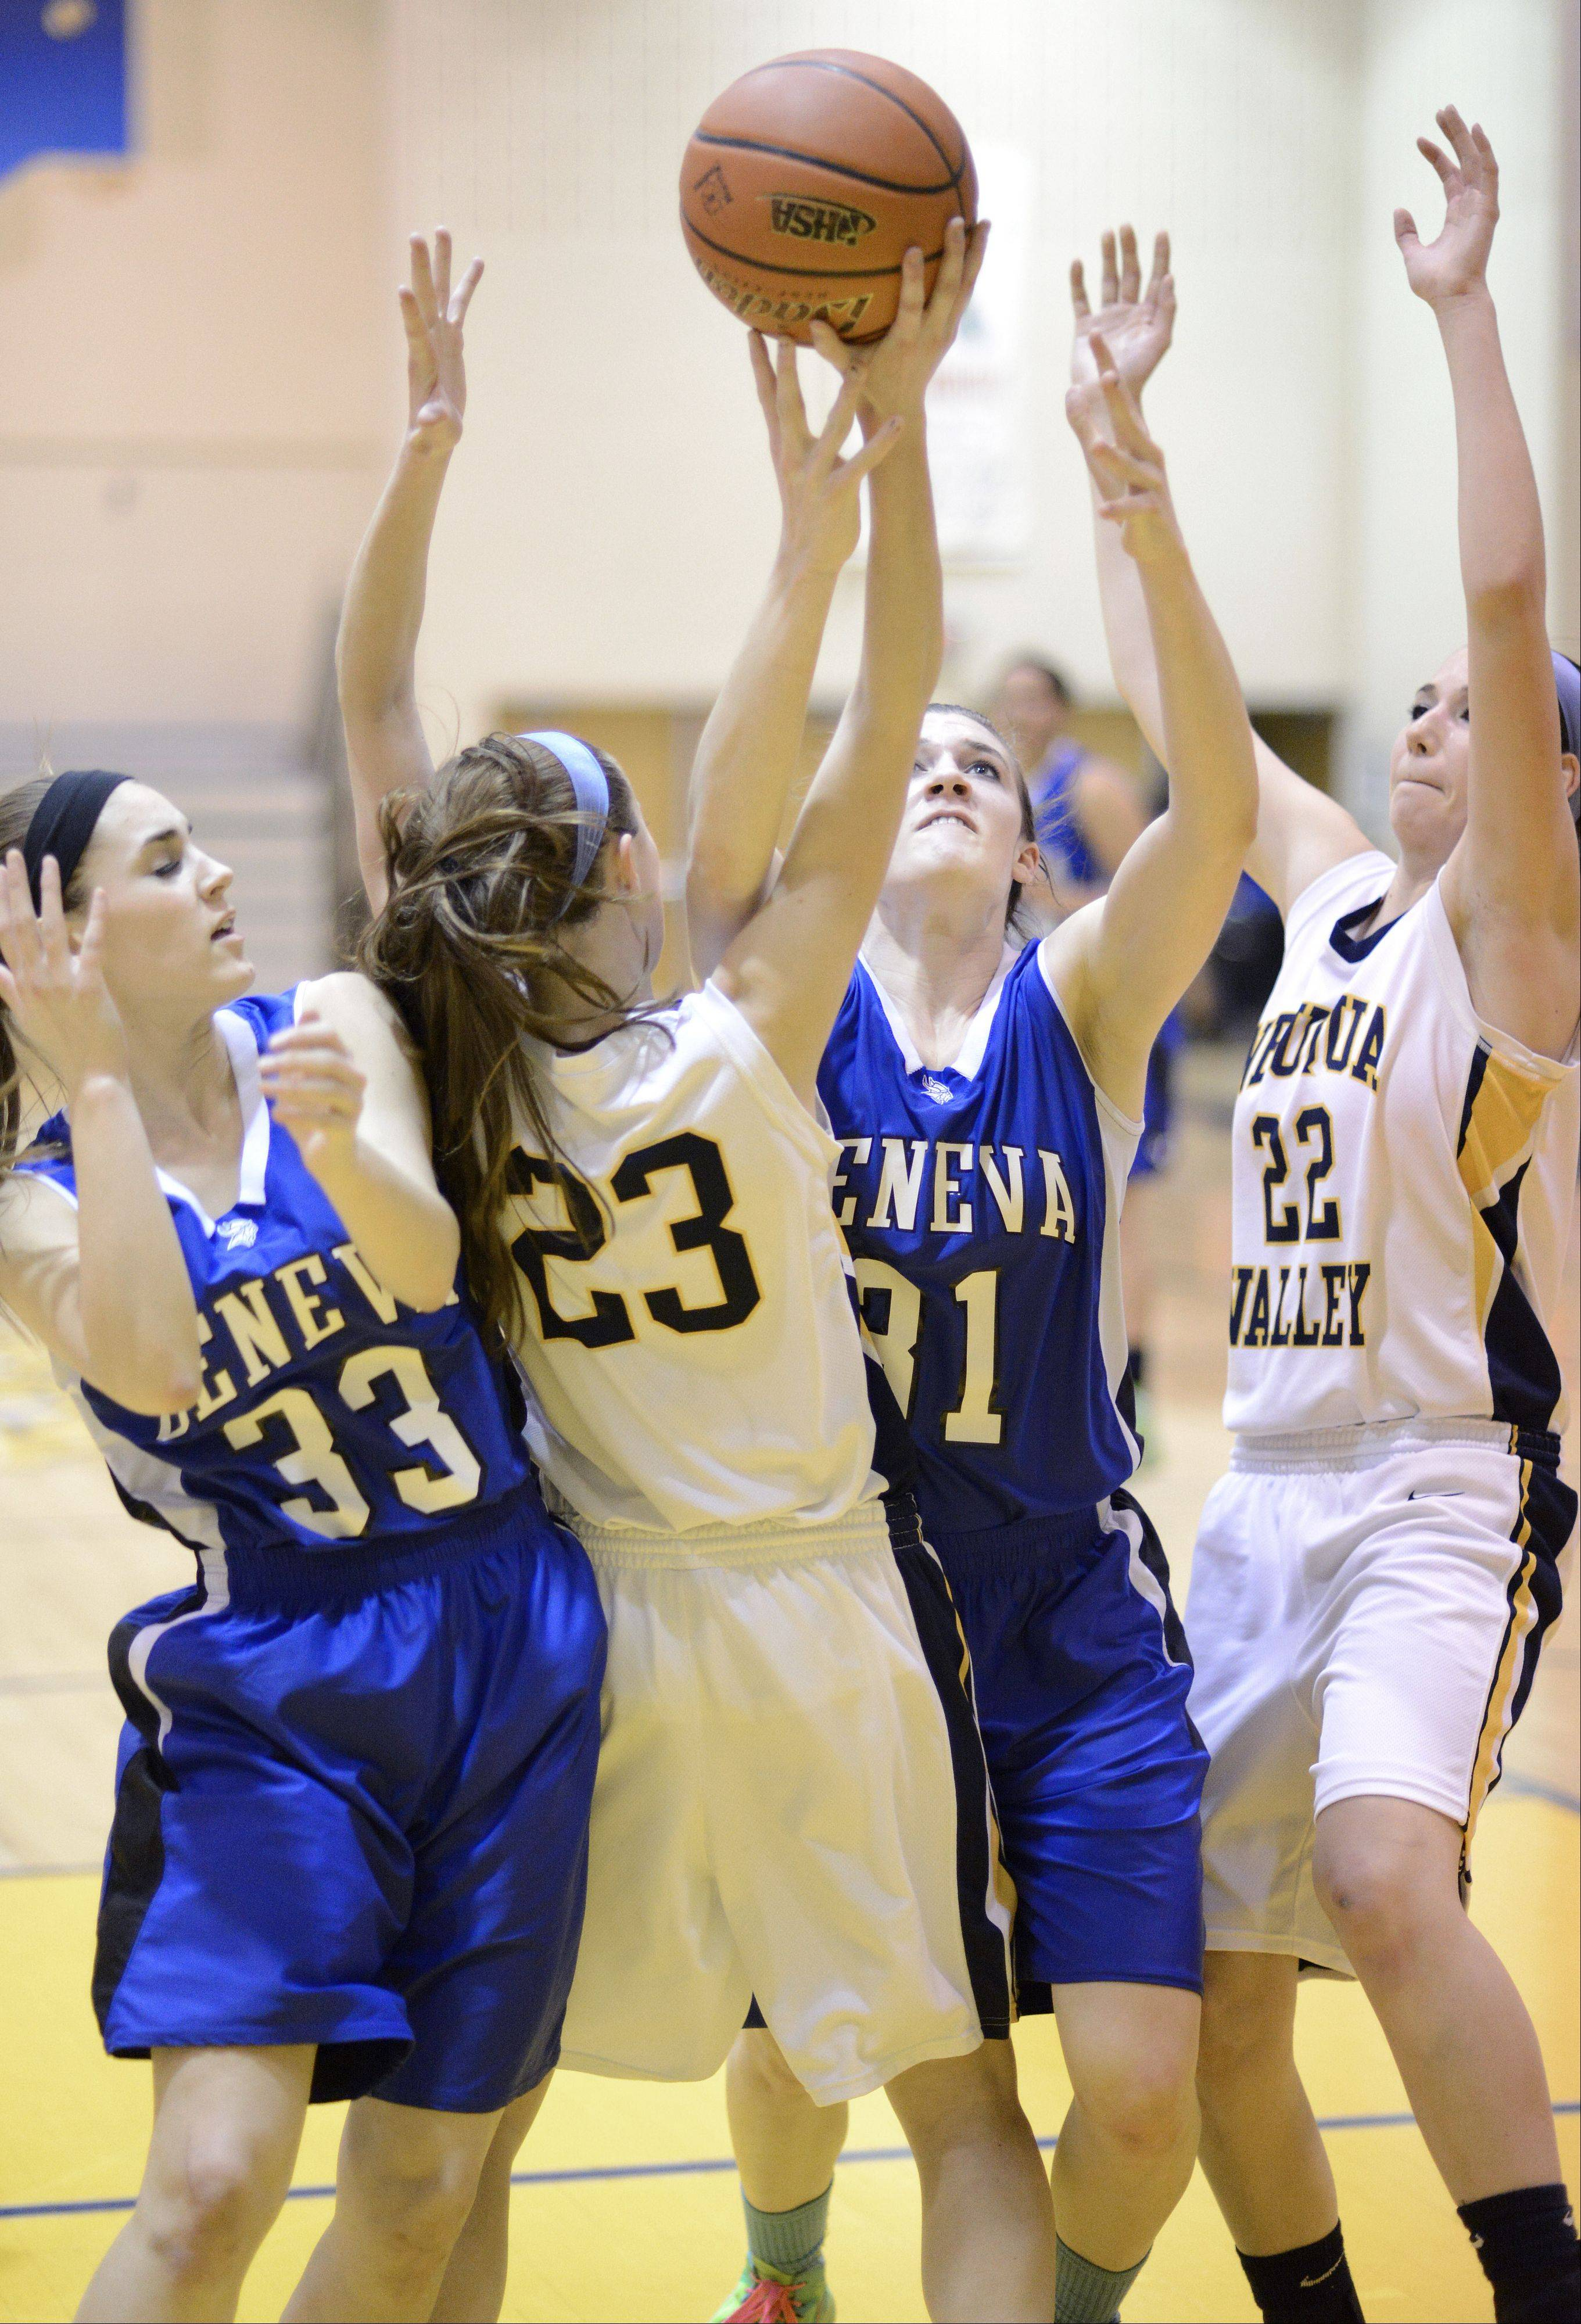 Neuqua Valley's Allison Hedrick (23) and Bryce Menendez (22) leap for a rebound with Geneva's Madeline Dunn (33) and Sami Pawlak (31) in the second quarter of the Upstate Eight championship on Friday, February 8.